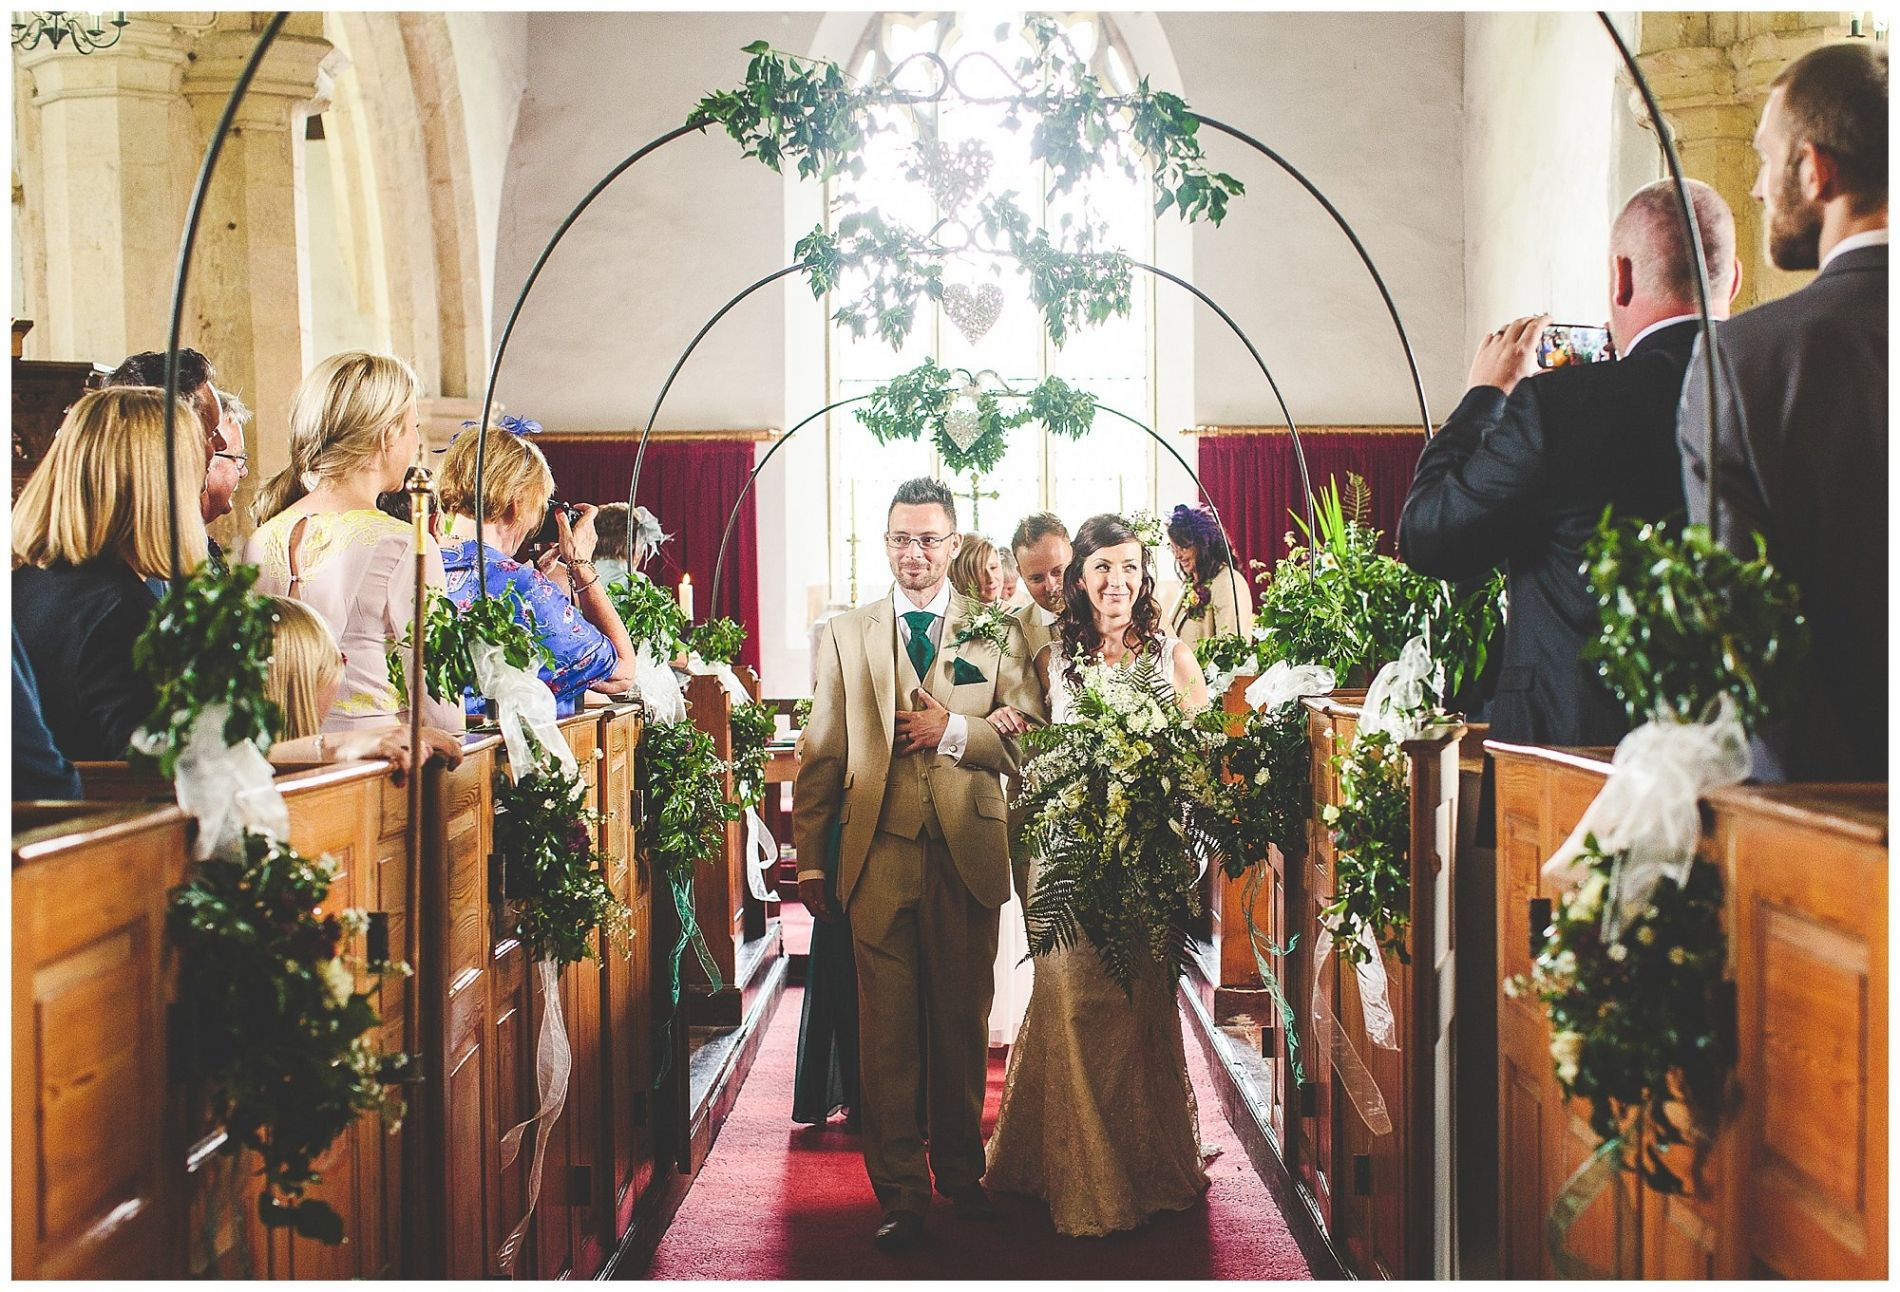 Wedding decorations inside church  Bringing the outdoors inside  rustic flowers and plants in church